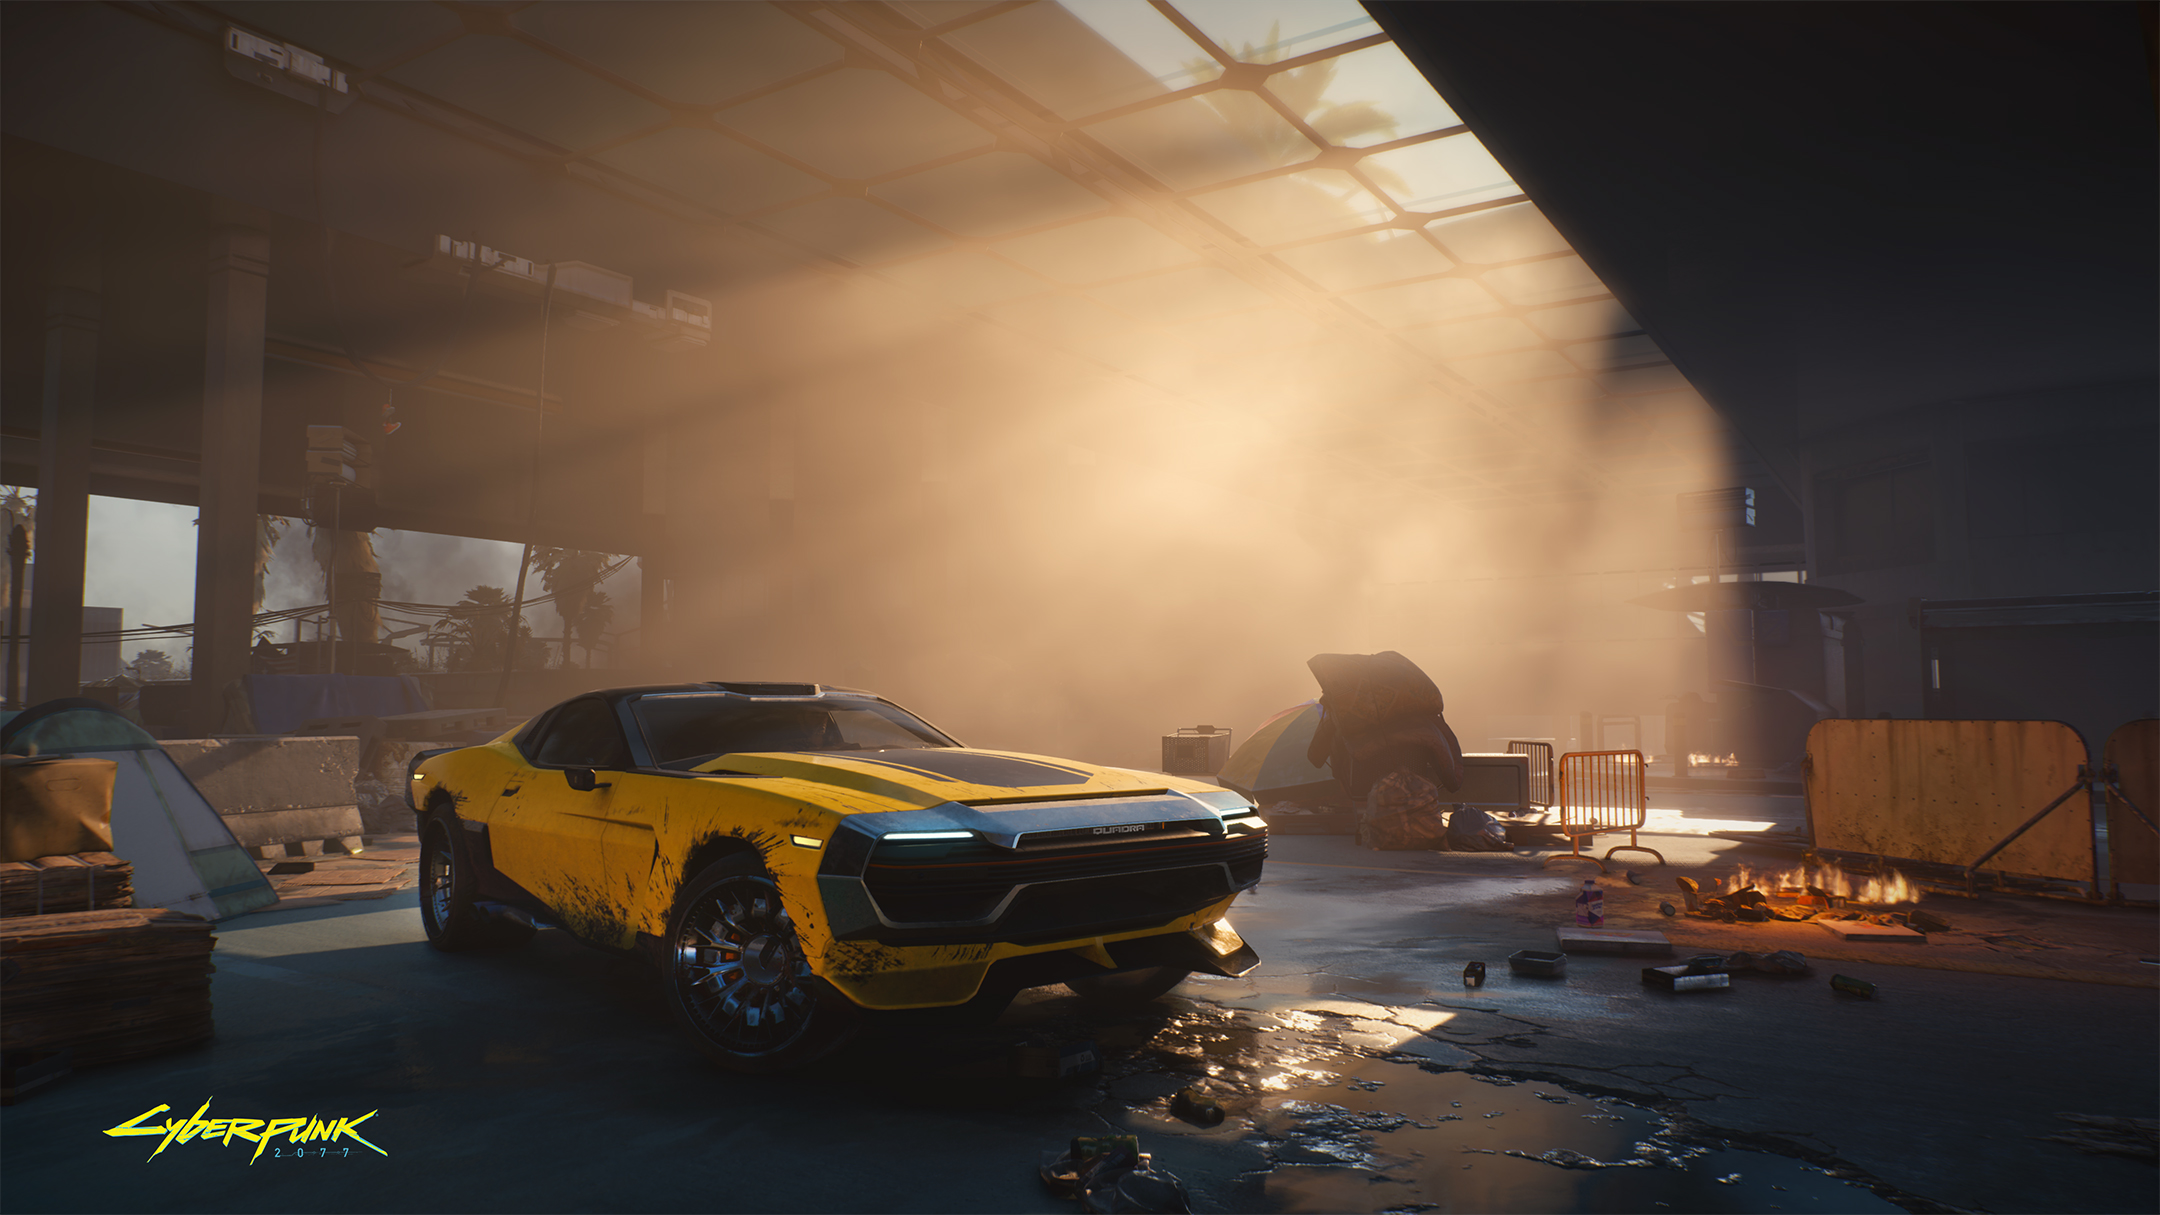 Cyberpunk 2077 - Quadra car - 2020 - official screen - sweet ride